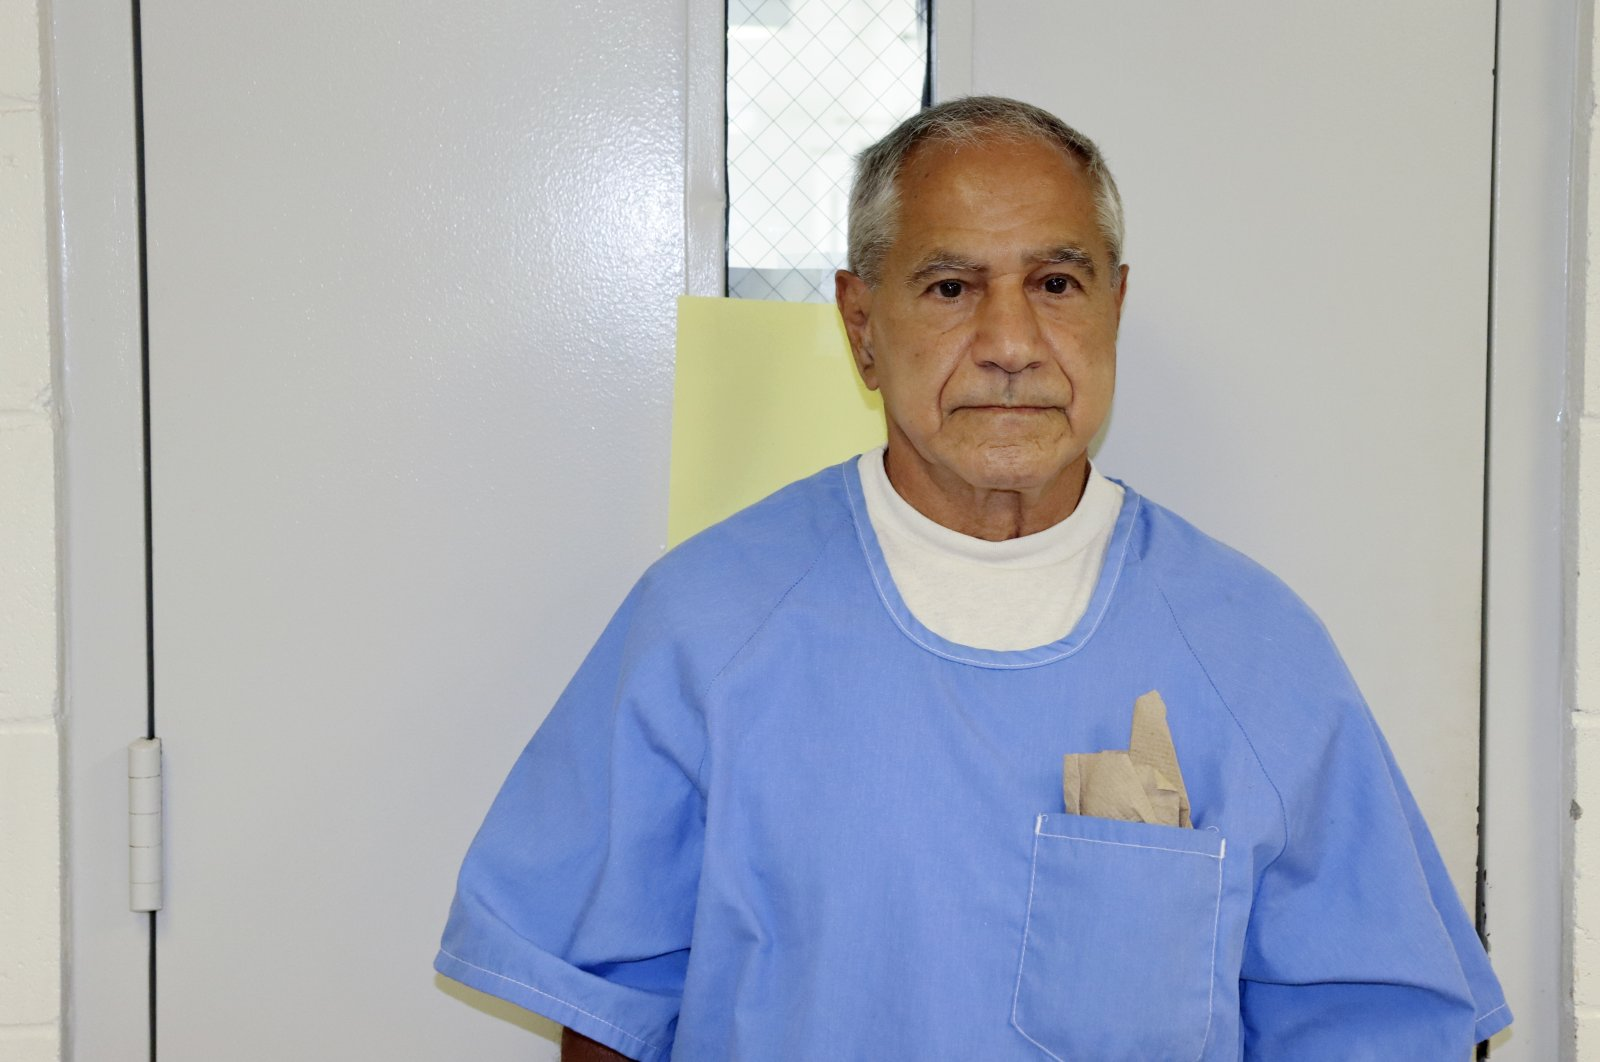 In this image provided by the California Department of Corrections and Rehabilitation, Sirhan Sirhan arrives for a parole hearing, San Diego, U.S., Aug. 27, 2021. (AP Photo)